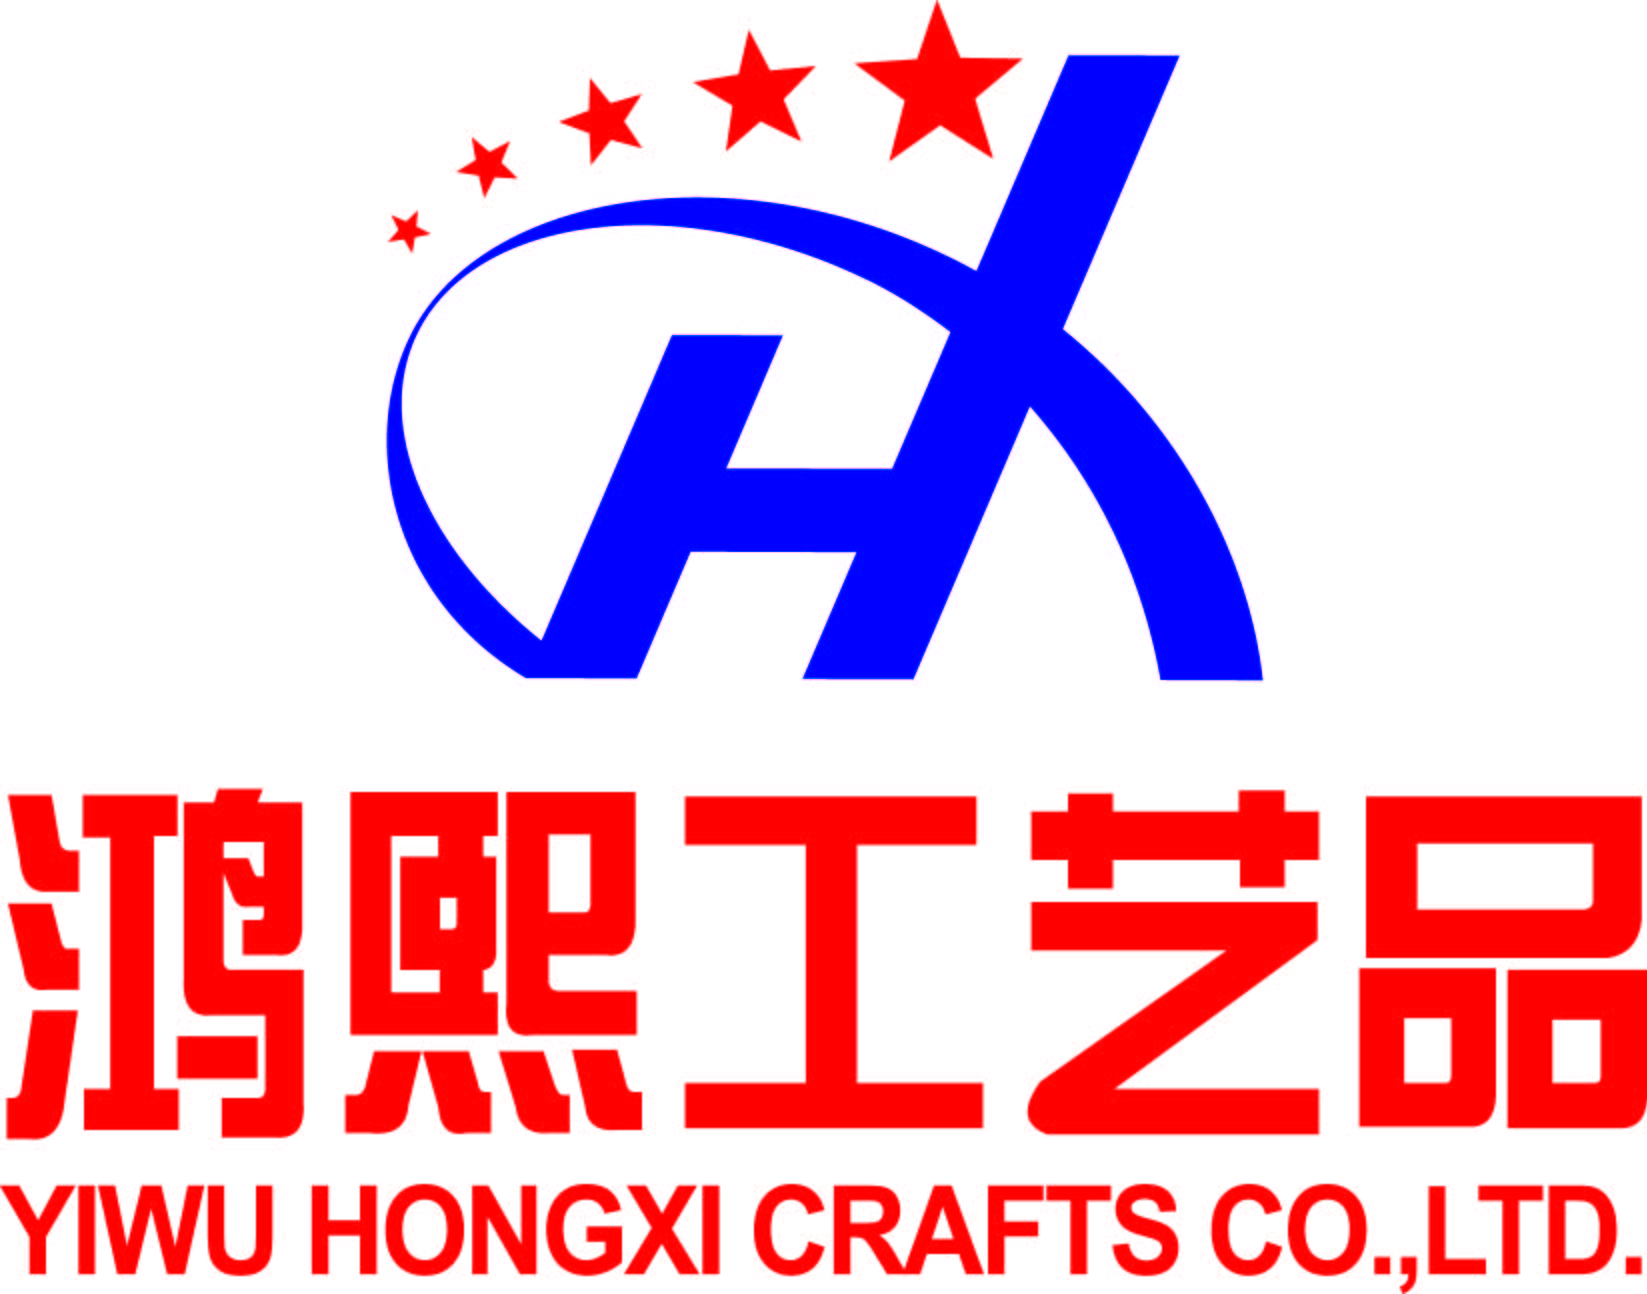 Yiwu Hongxi Crafts Co.,Ltd